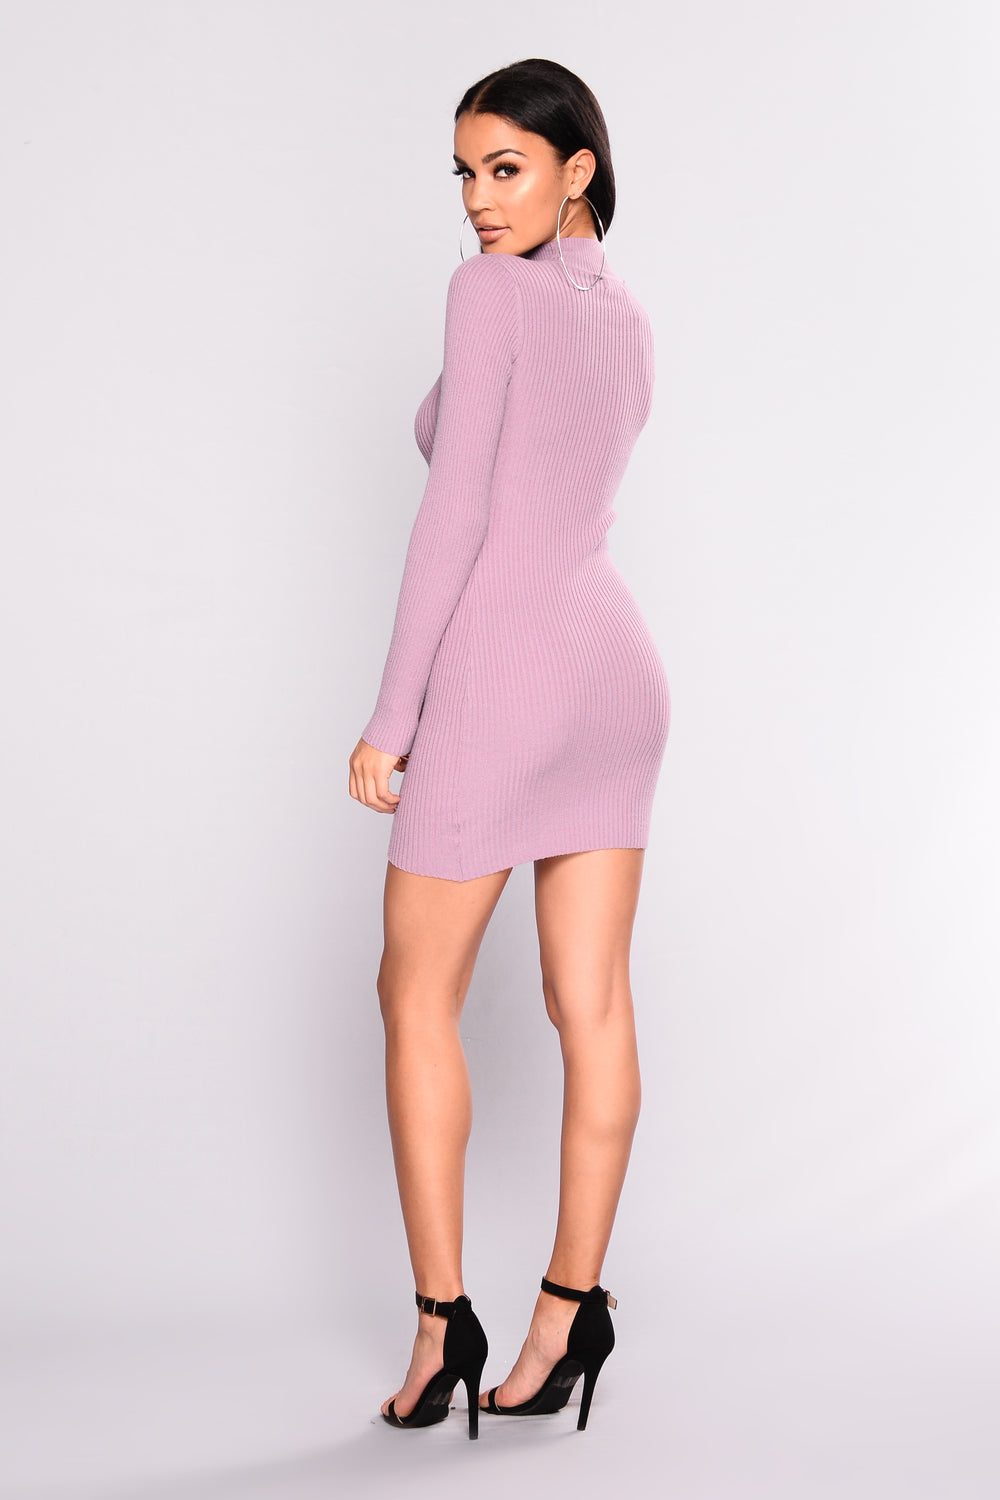 Borrow Love Knit Dress - Lavender